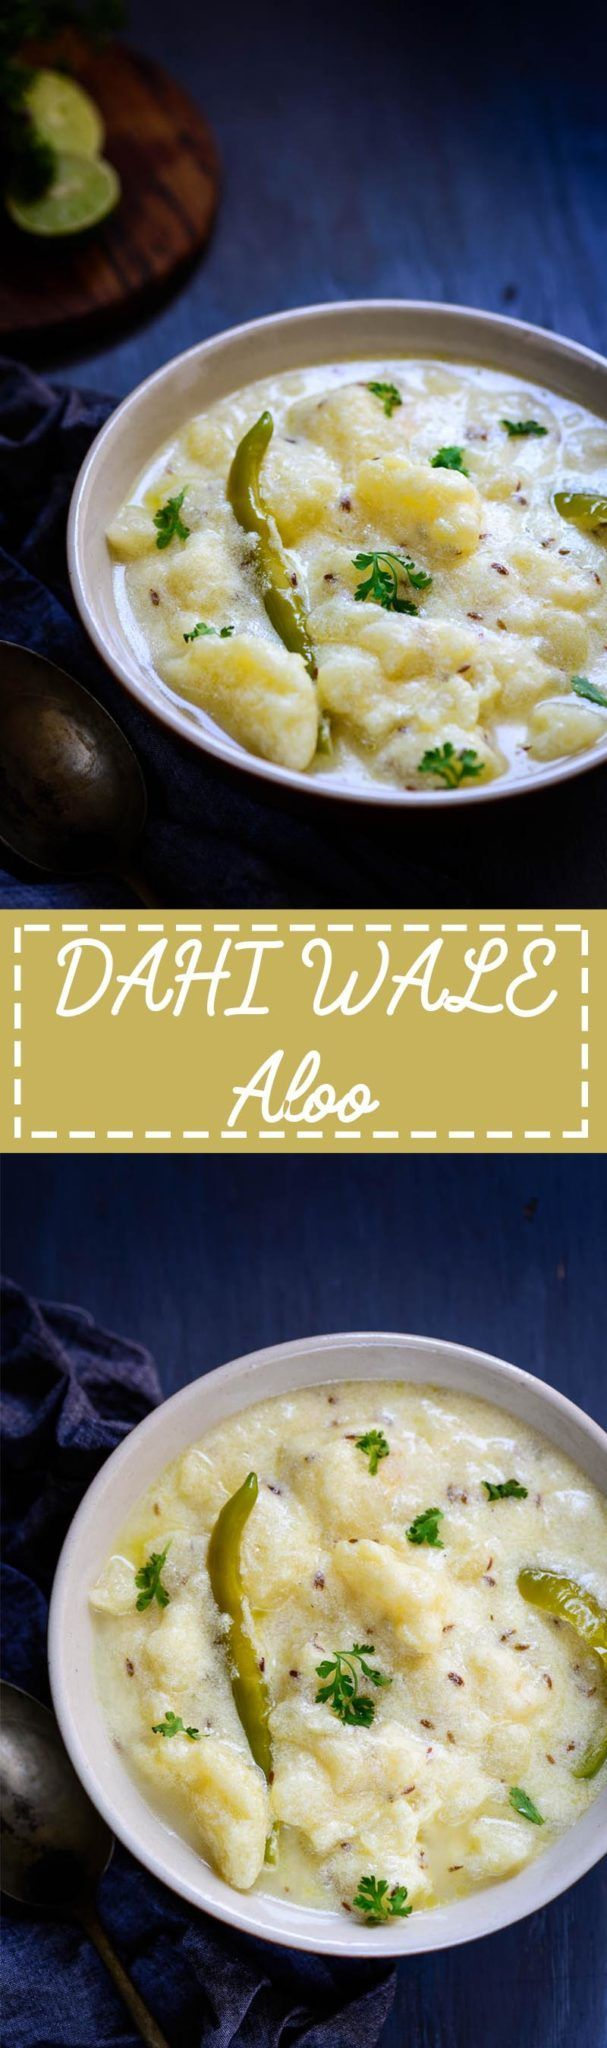 Punjabi Dahi Aloo Recipe I Dahi Wale Aloo Recipe is a simple potato curry made in a yogurt based gravy. This is eaten mostly during pooja days or otherwise with poories and parathas. Indian I Potato I curry I easy I simple I best I Punjabi I Traditional i vrat I fasting I via @WhiskAffair